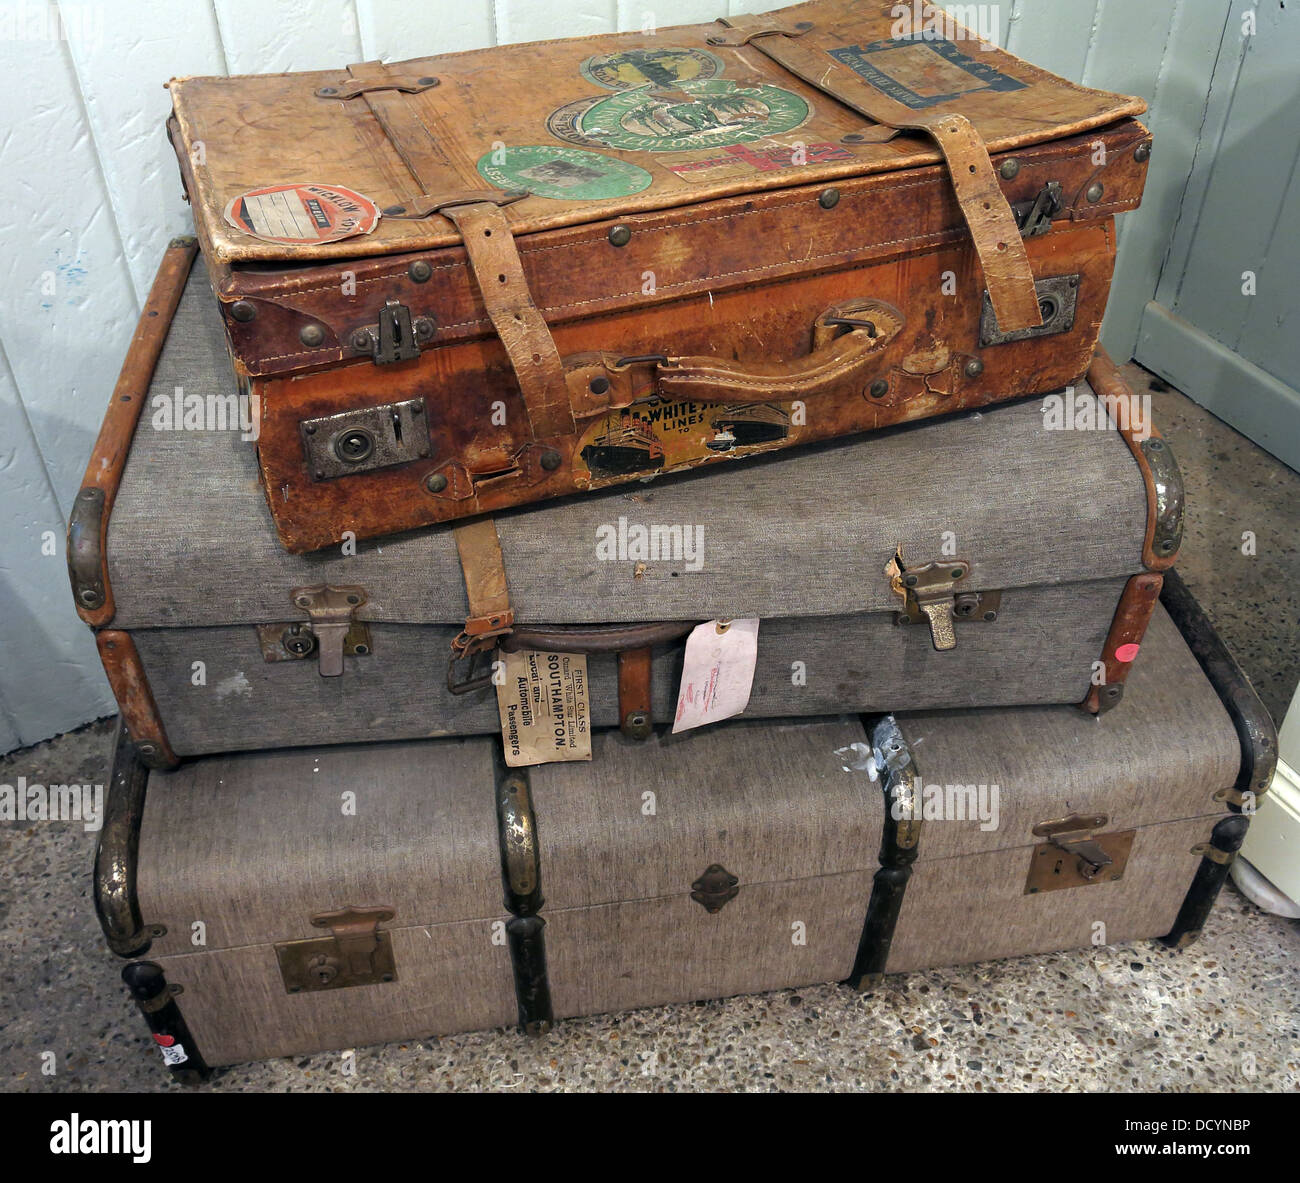 3 Old suitcases filed up with luggage labels - Stock Image